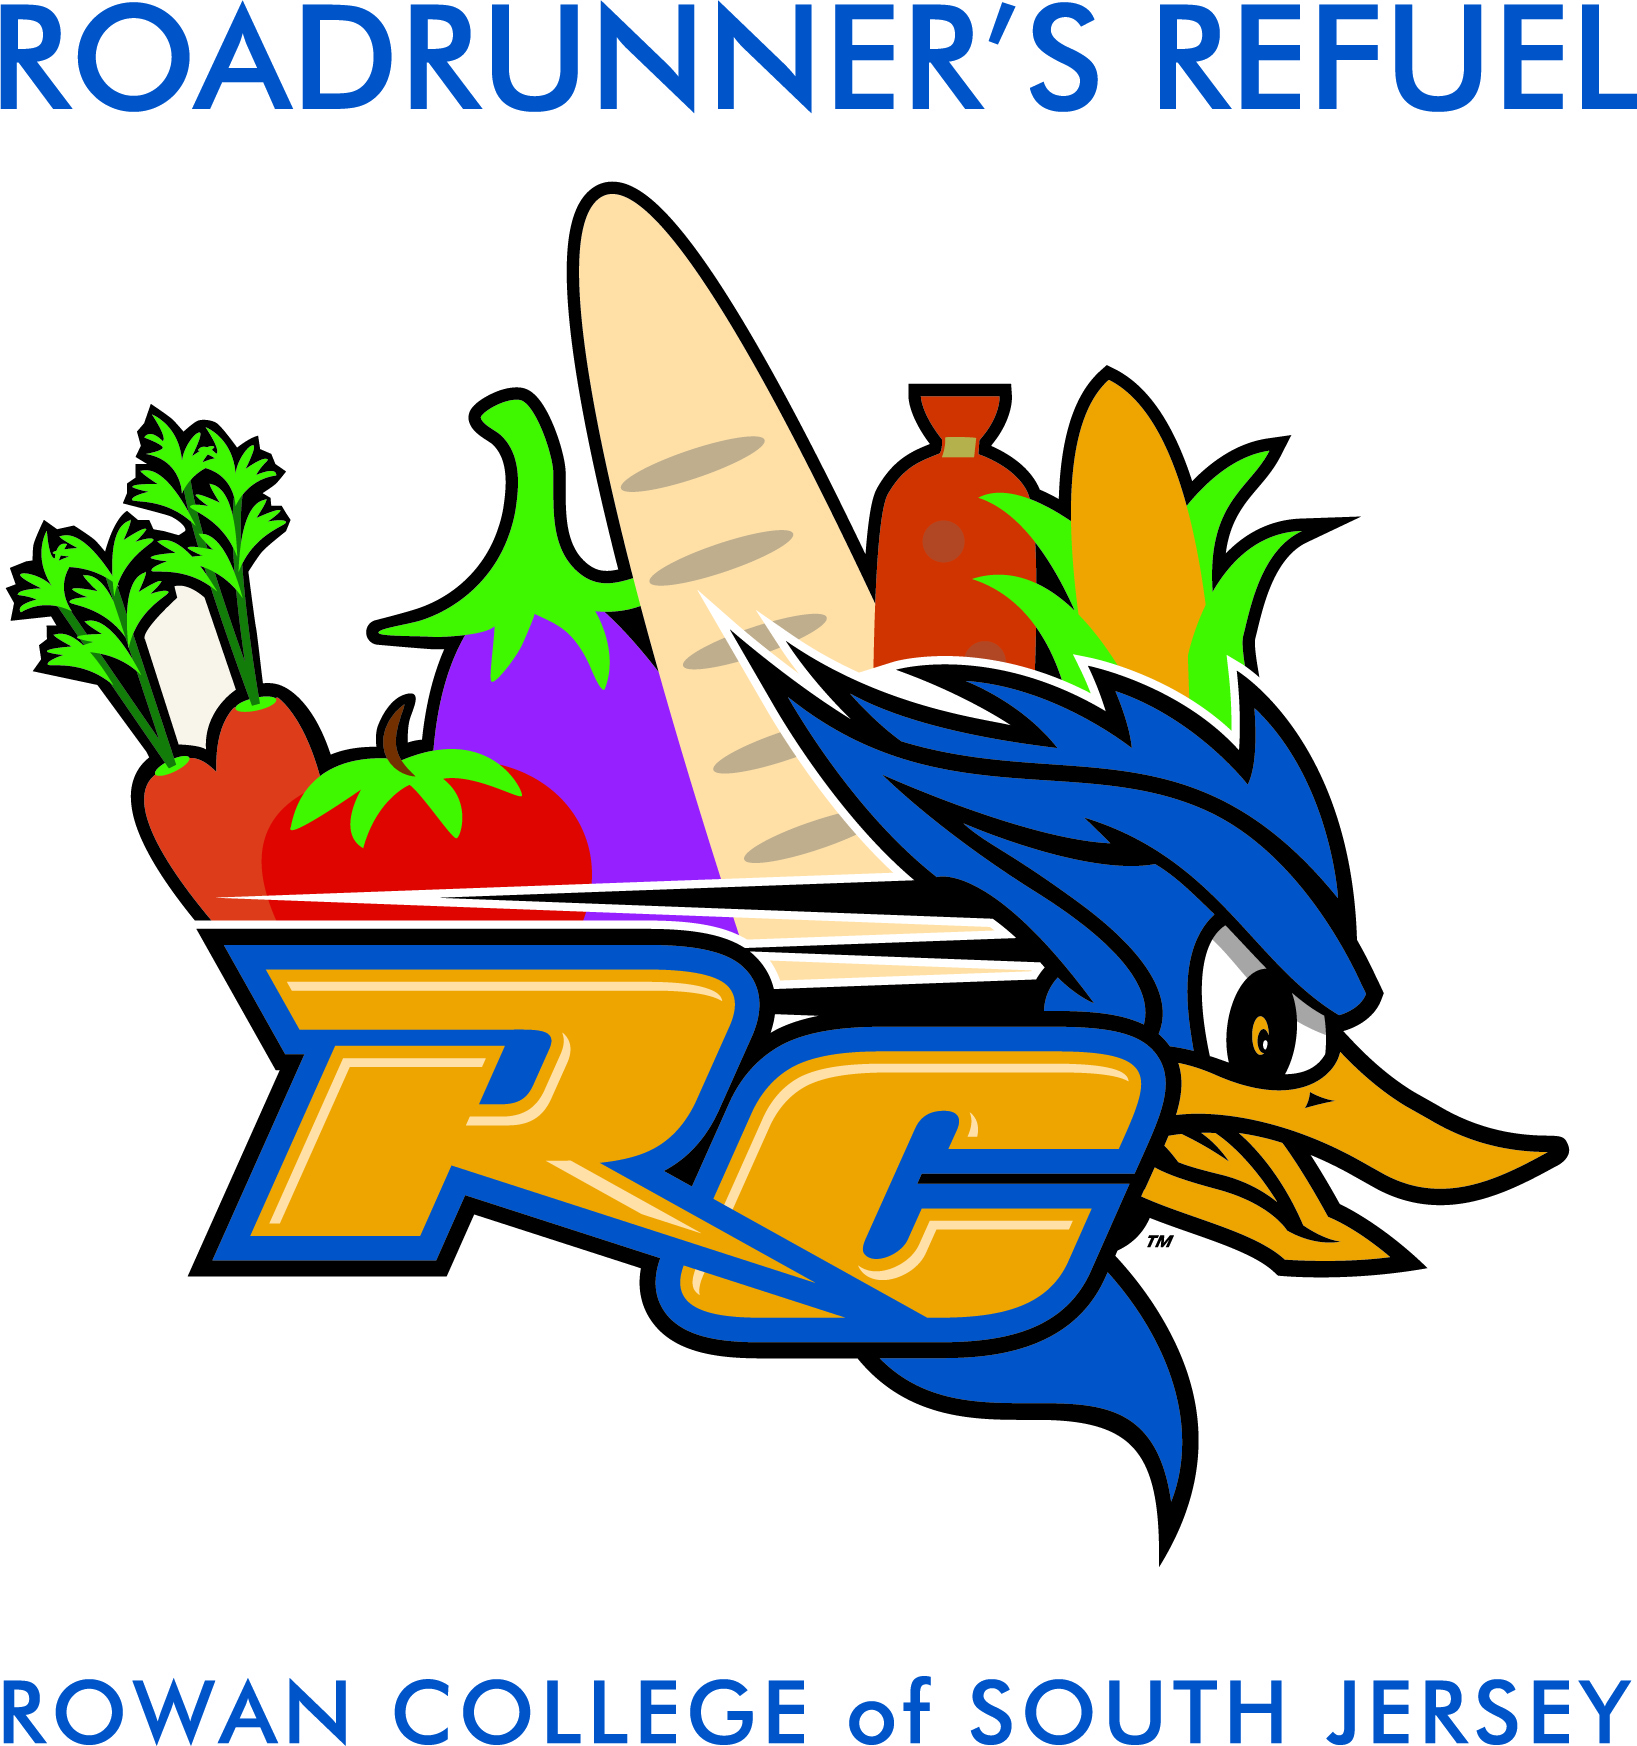 roadrunner-refueling.PNG